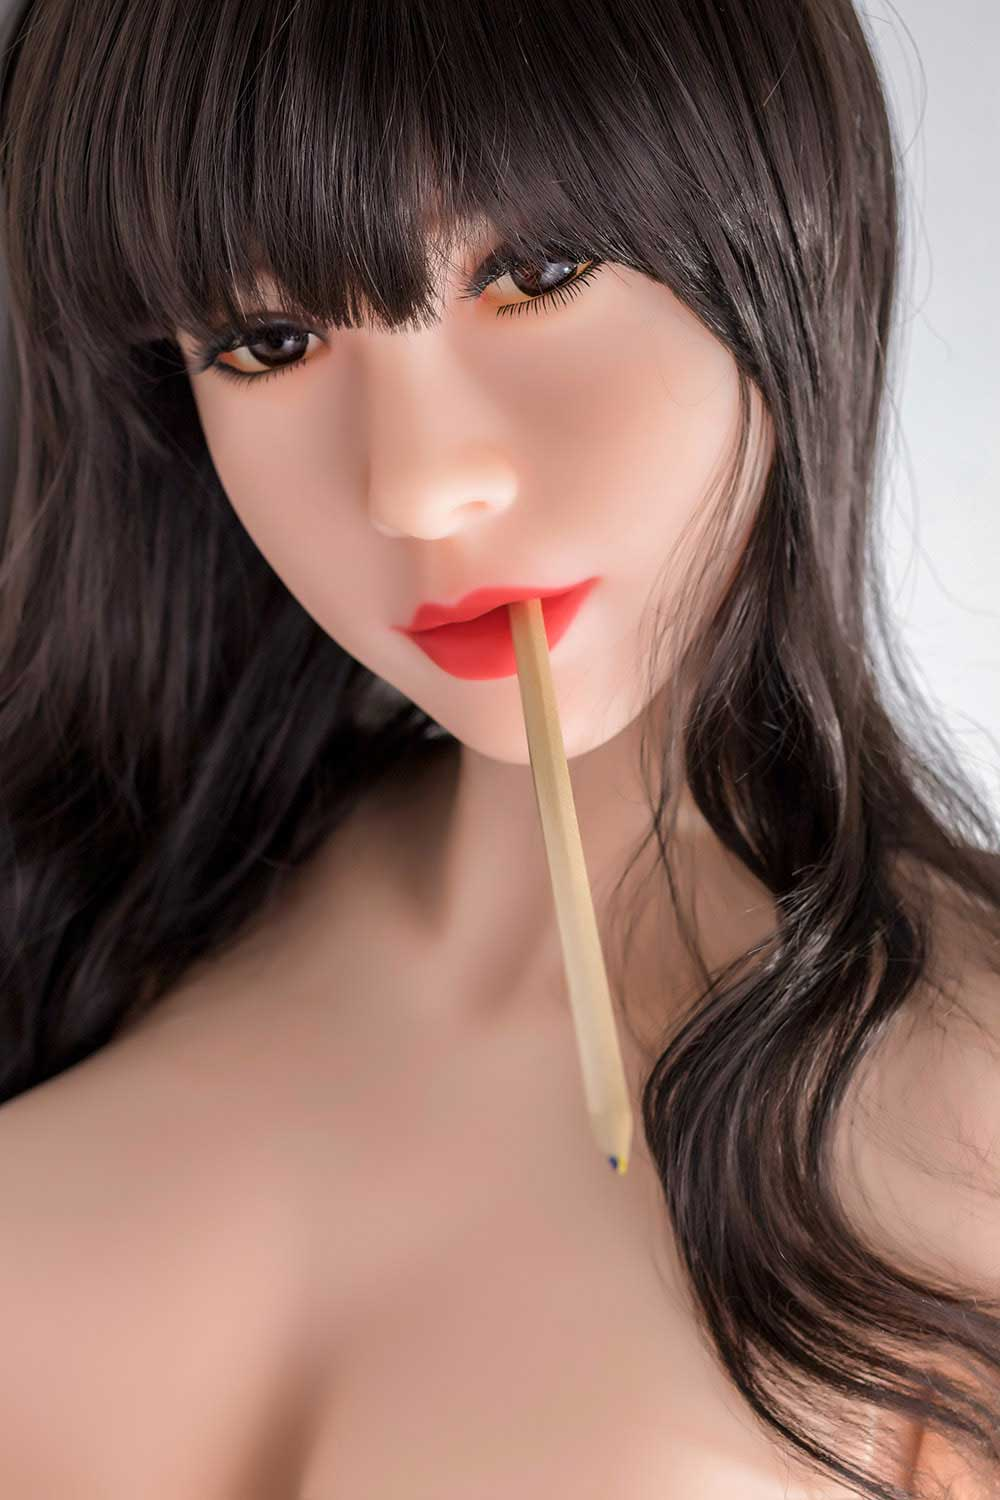 Sex doll with pen in mouth